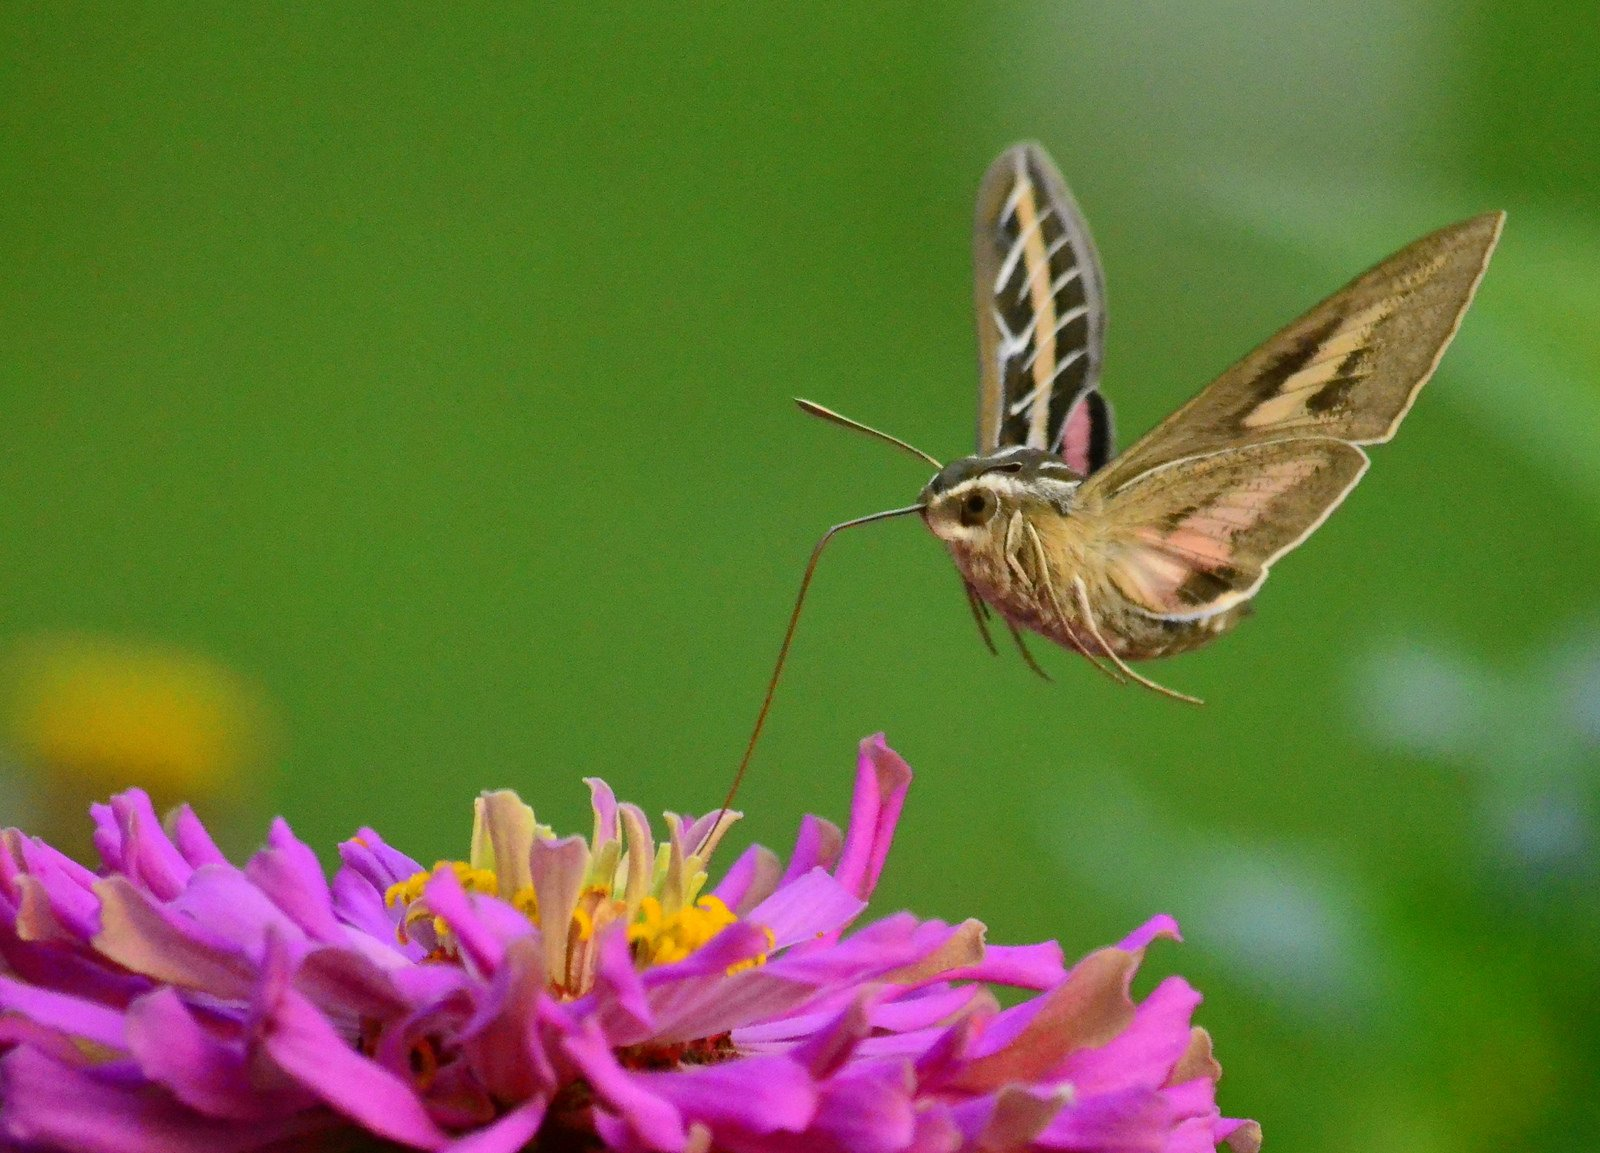 Flying above a bright-pink zinnia, a multicolored moth takes a sip of nectar.